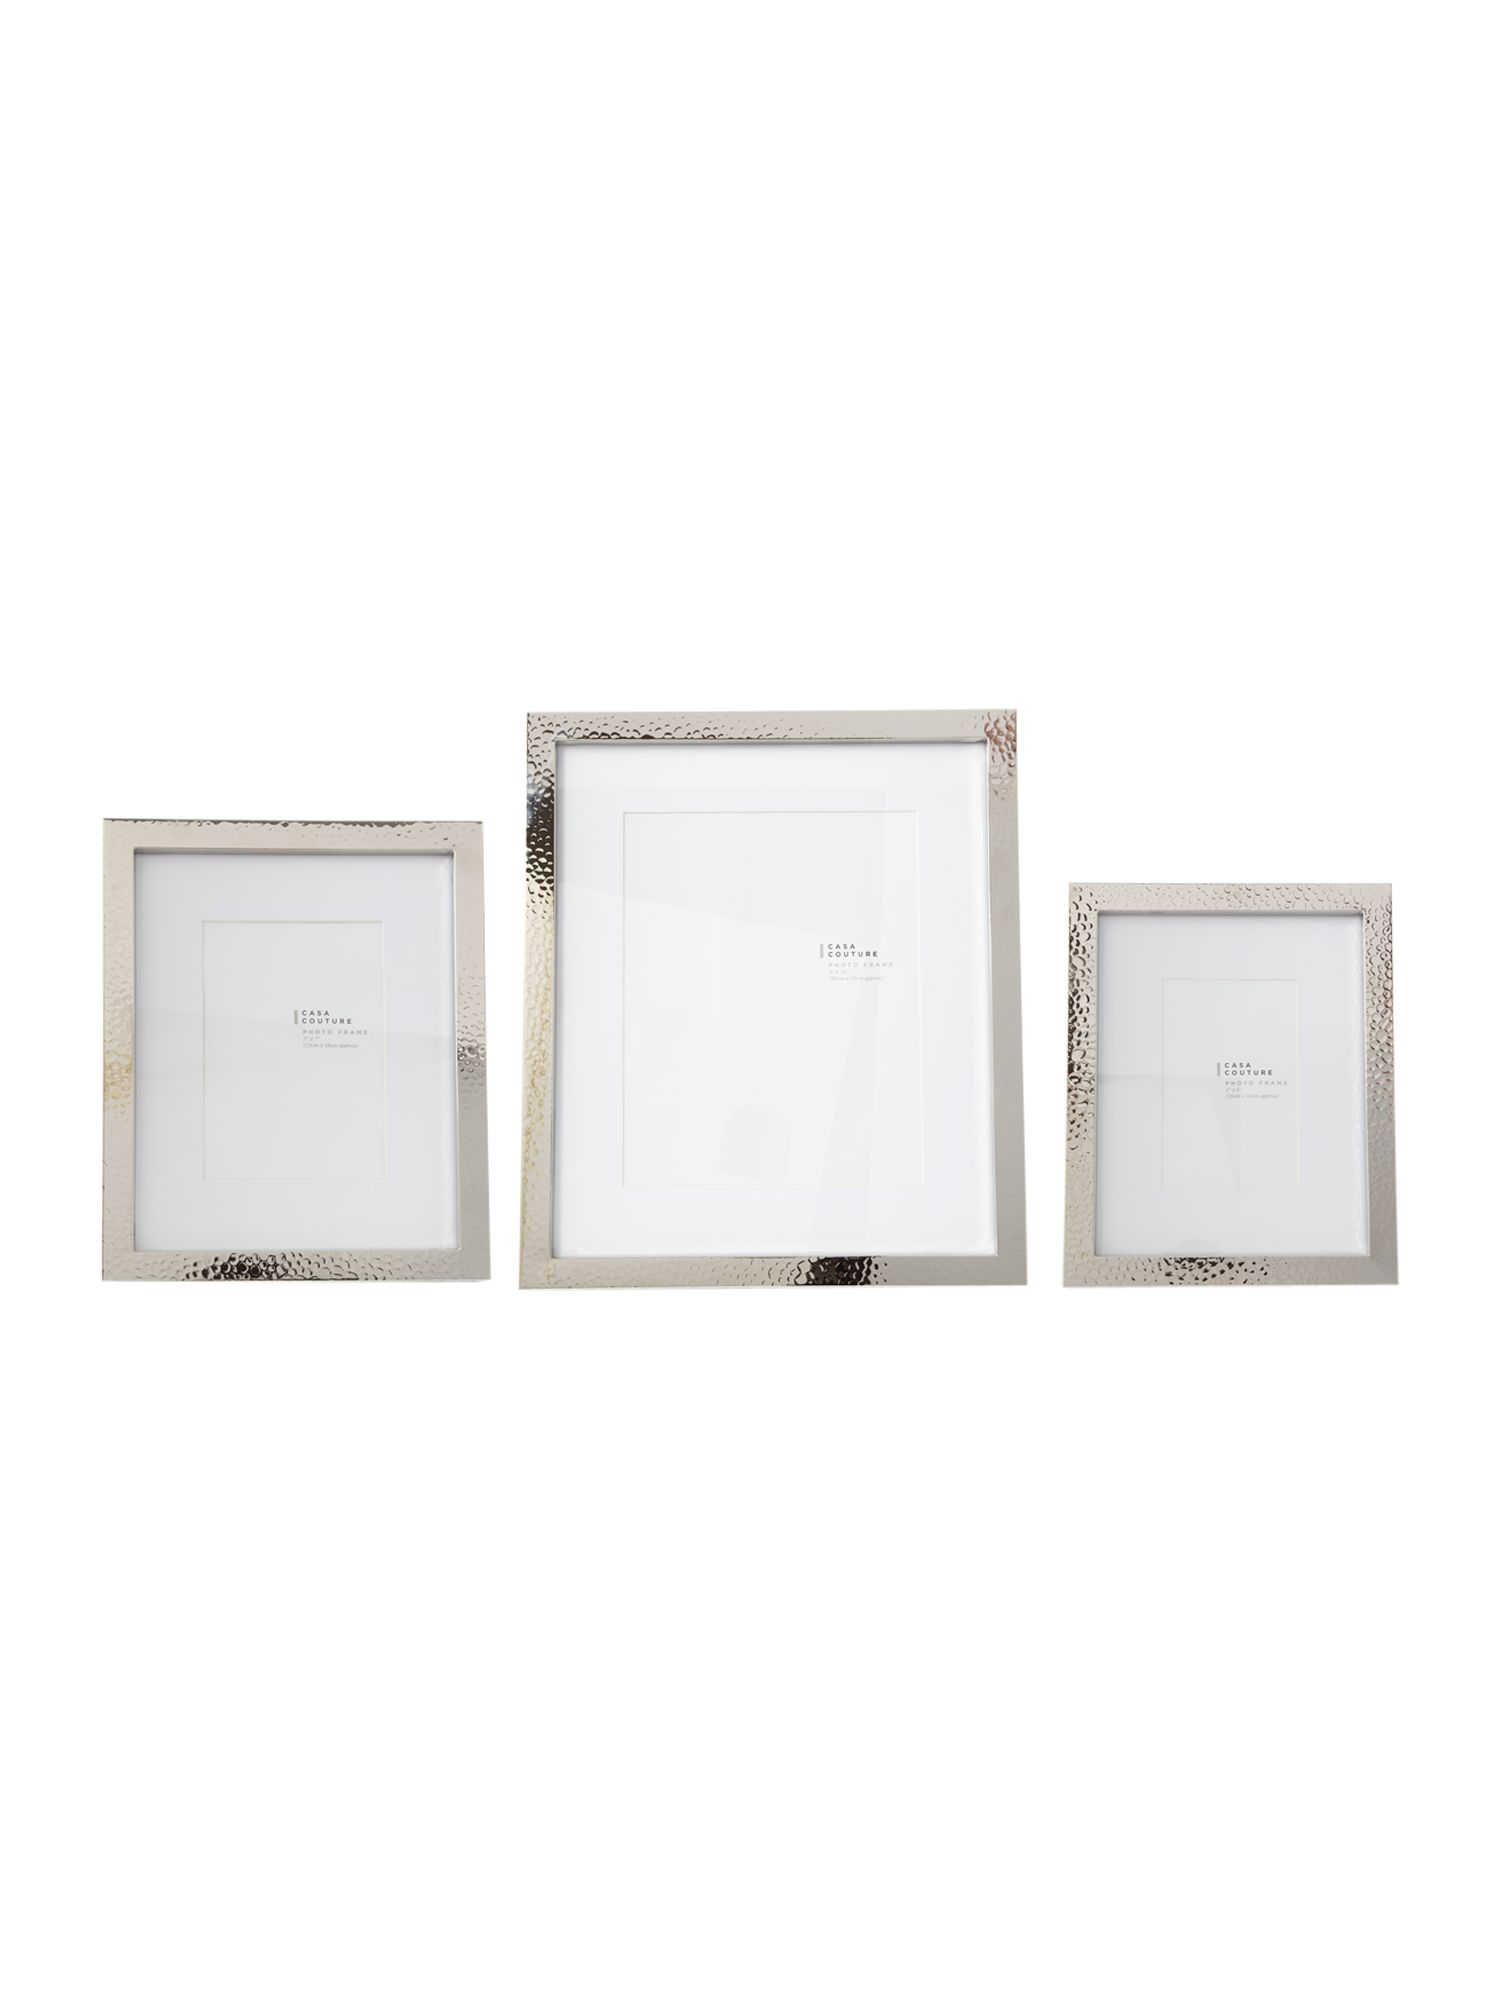 Westcroft photo frames